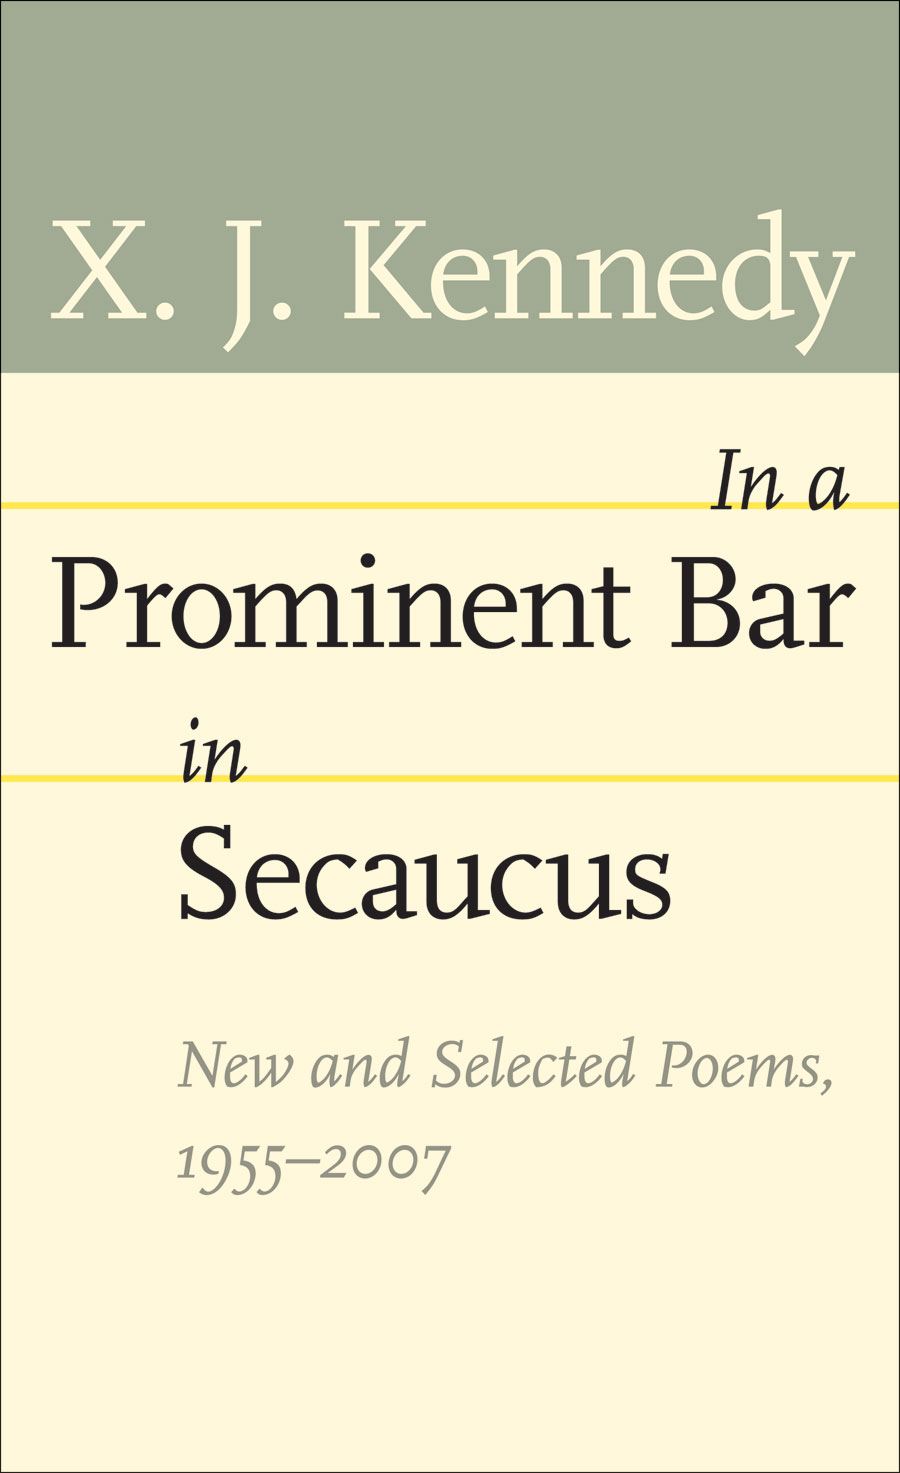 an analysis of a hero in a in a prominent bar in secaucus one day by x j kennedy Jarold ramsey, the tally stick 4 x j kennedy, in a prominent bar in secaucus one day 65 labor day 11 o richard snyder.